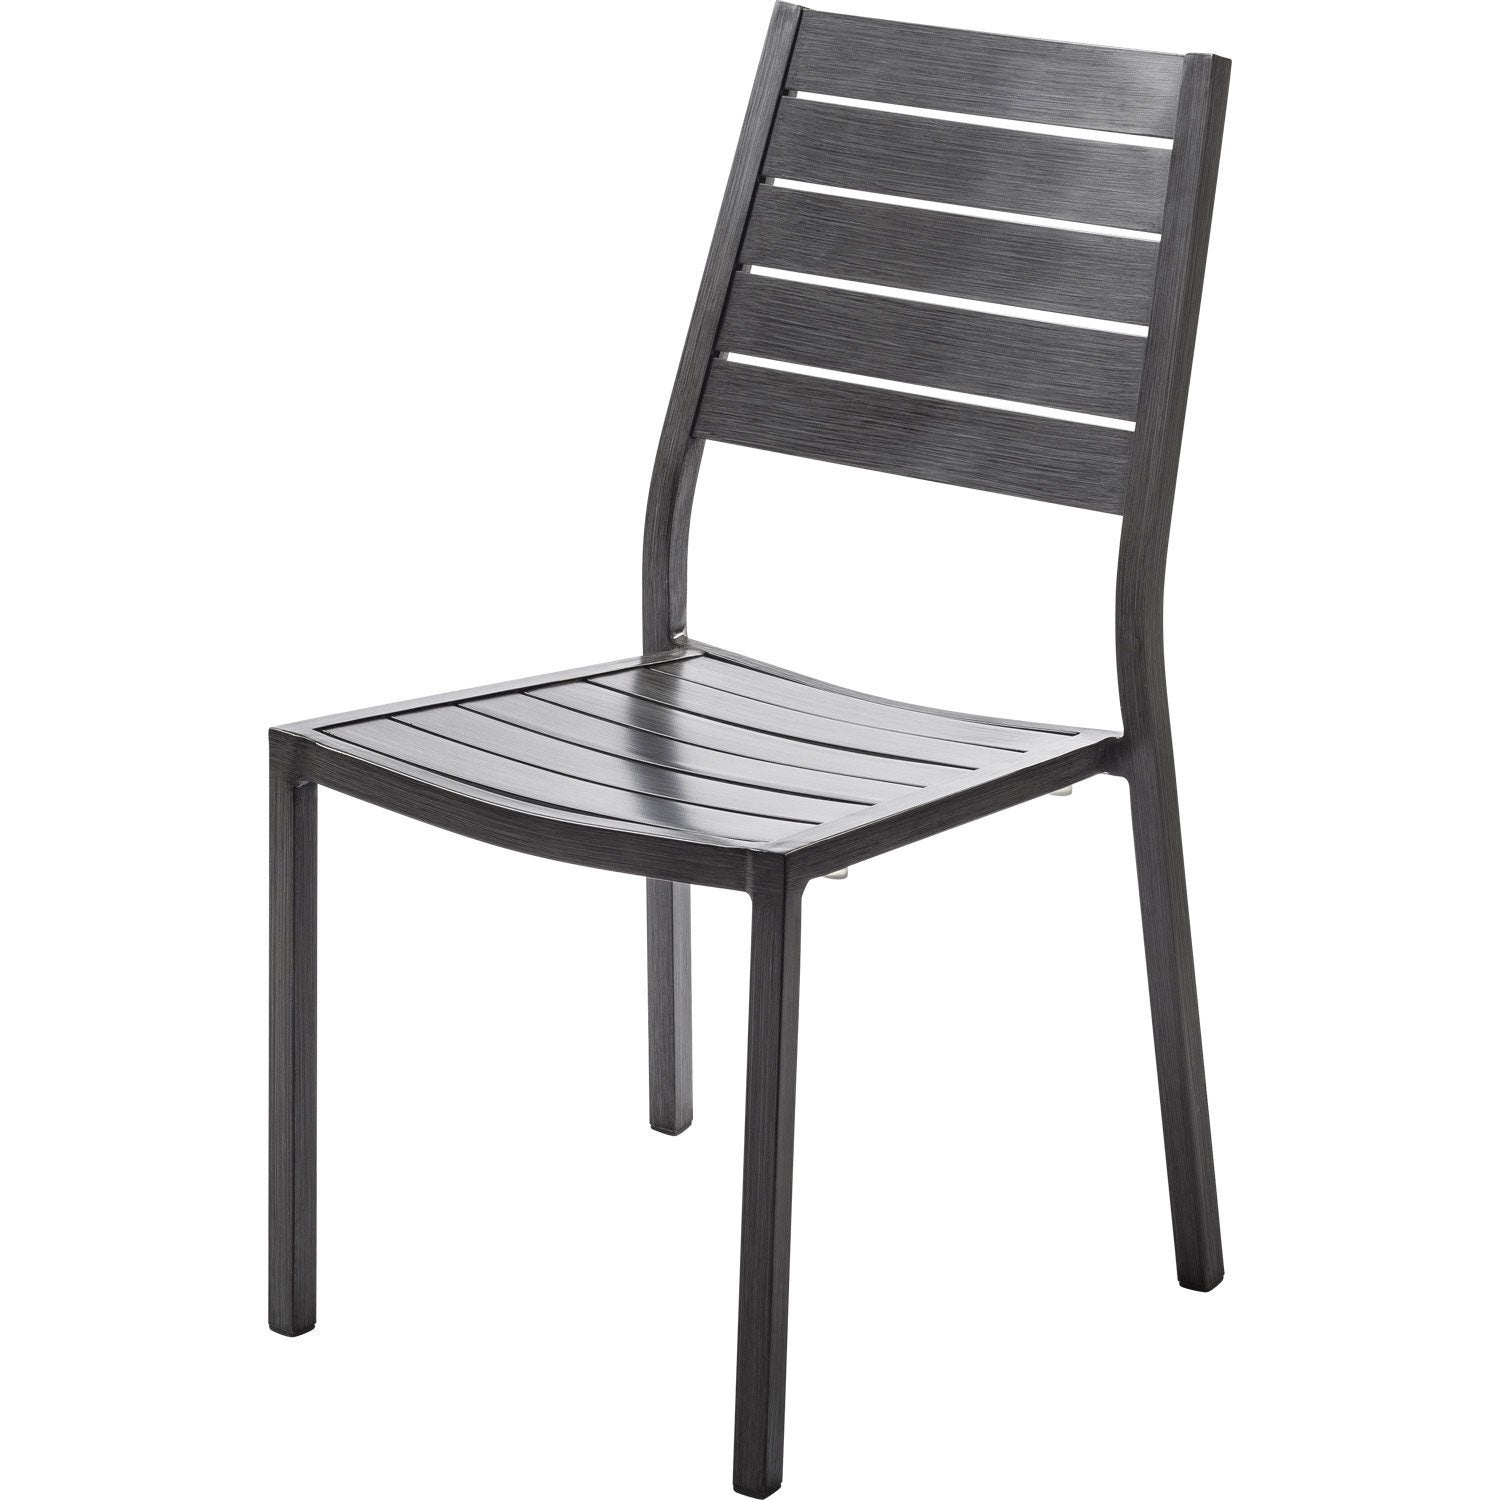 Chaise de jardin en aluminium antibes ice argent leroy for Table et chaise de jardin en aluminium